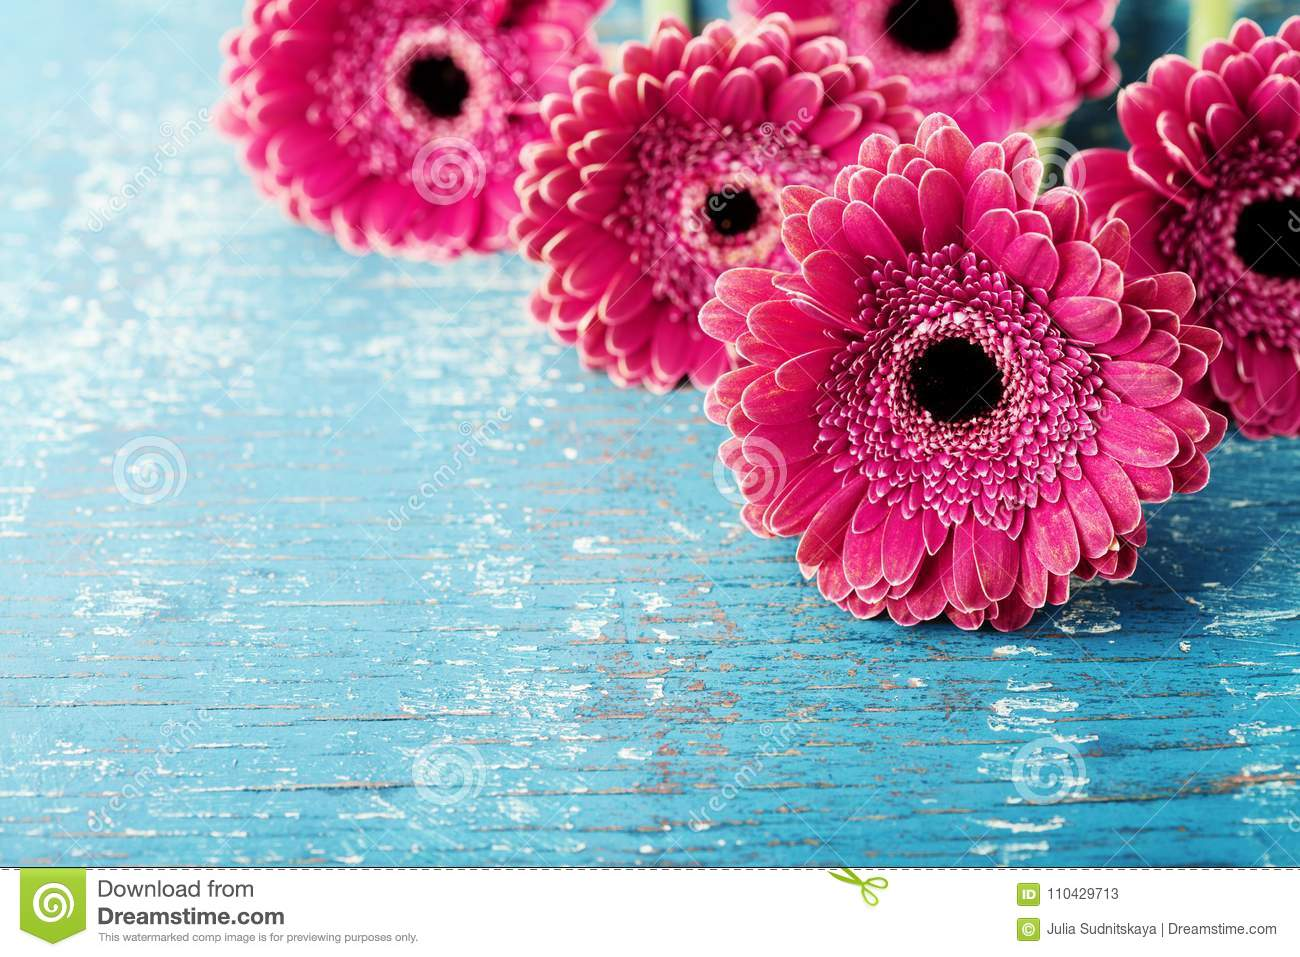 Beautiful spring greeting card for Mother or Womans day with fresh gerbera daisy flowers on vintage turquoise background.